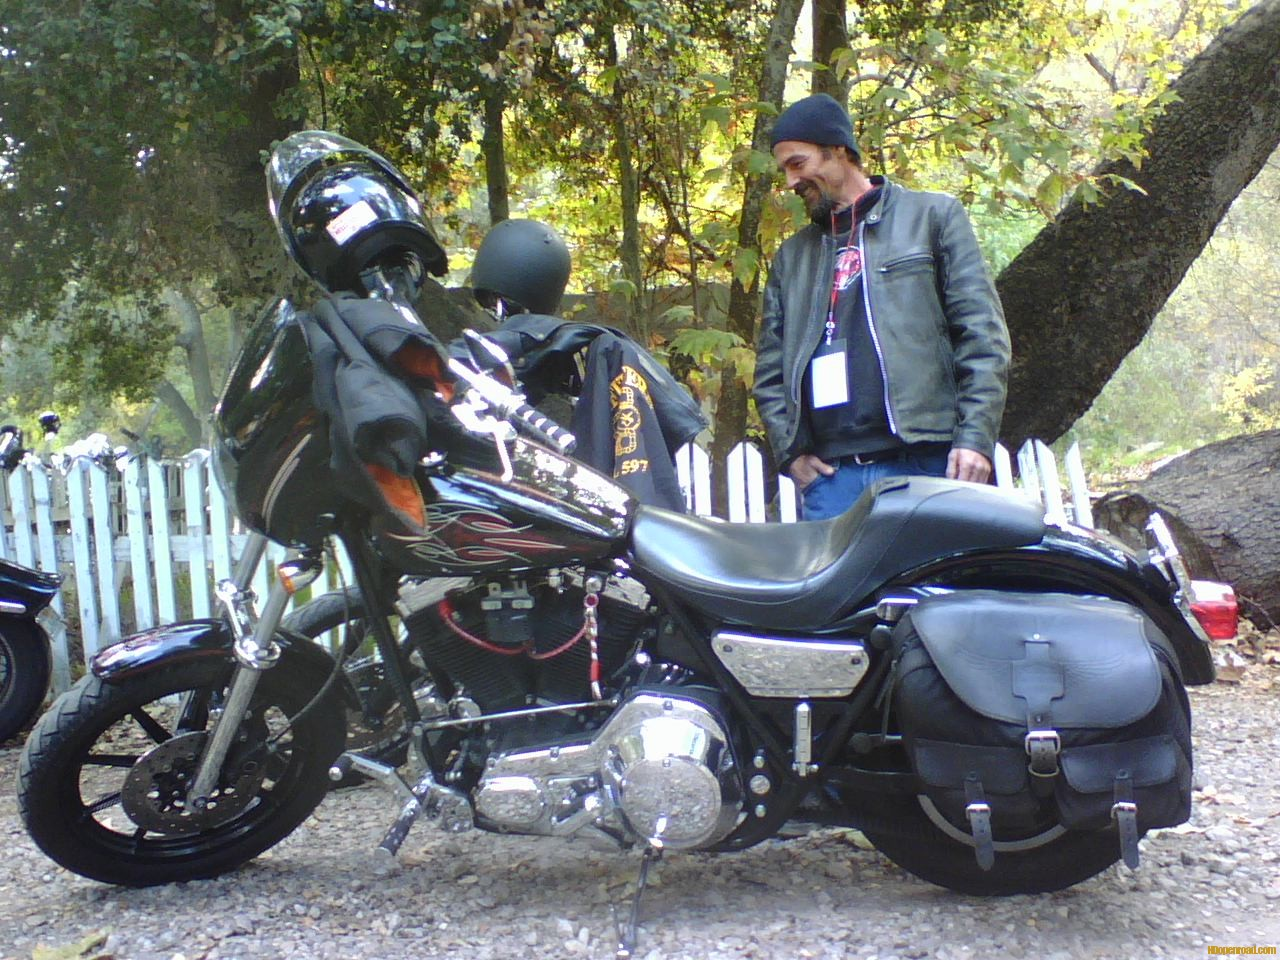 Harley evo vs twin cams the sweet years todds harley pix then these years represent the absolute best motorcycles that harley davidson has produced to date fandeluxe Image collections